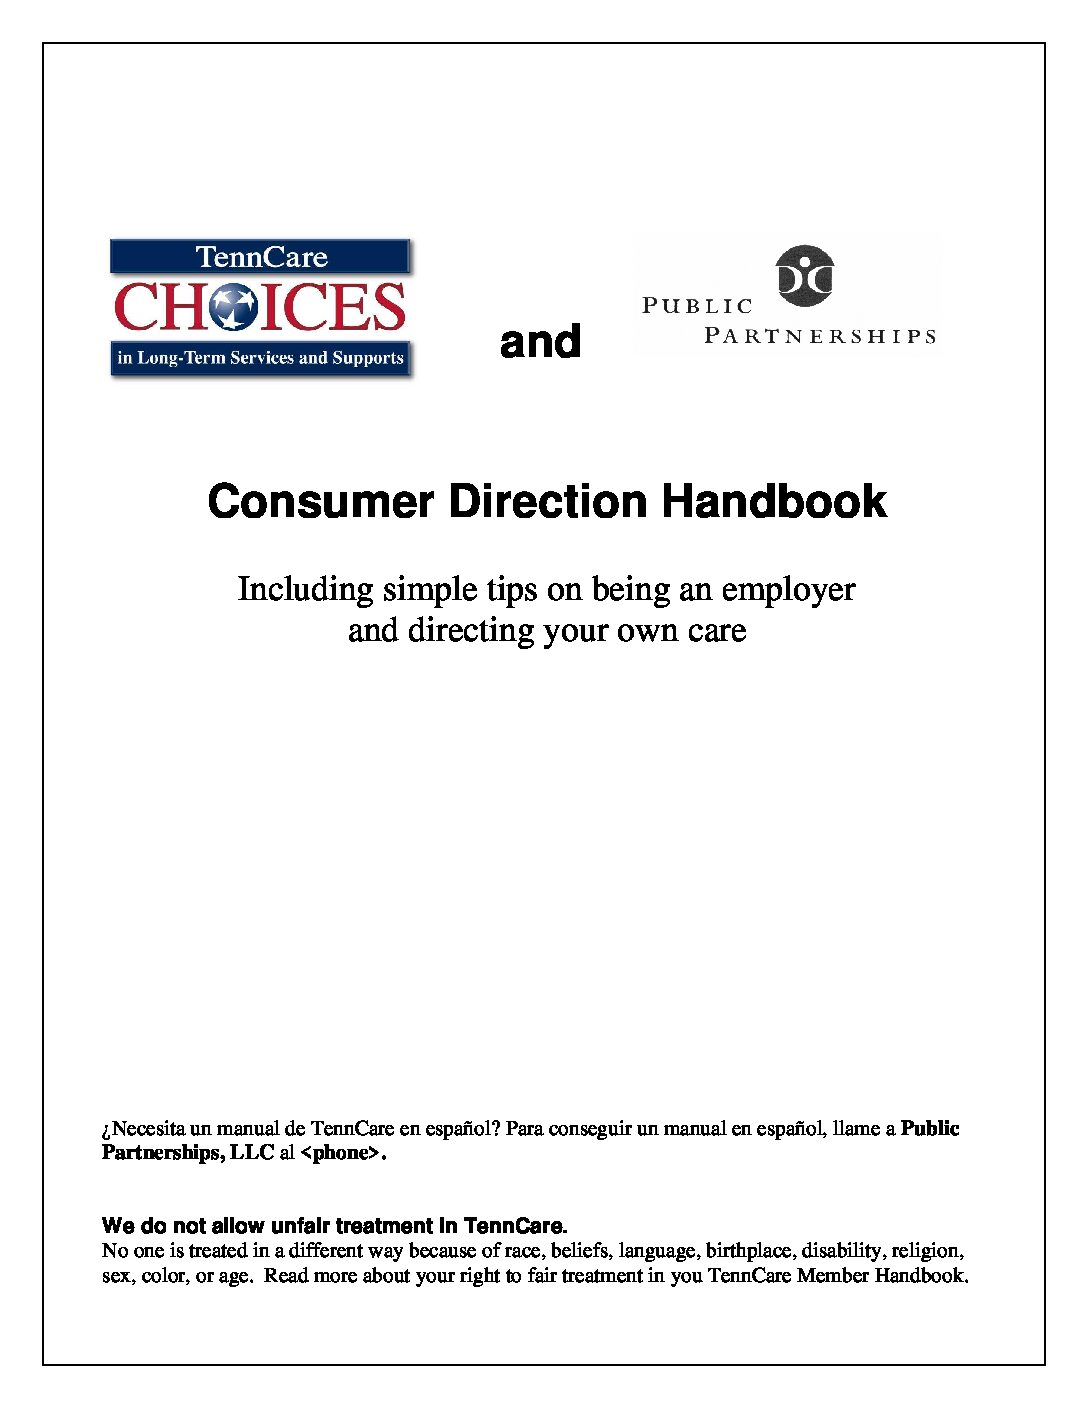 TennCare Choices – Consumer Direction Handbook Including simple tips on being an employer and directing your own care